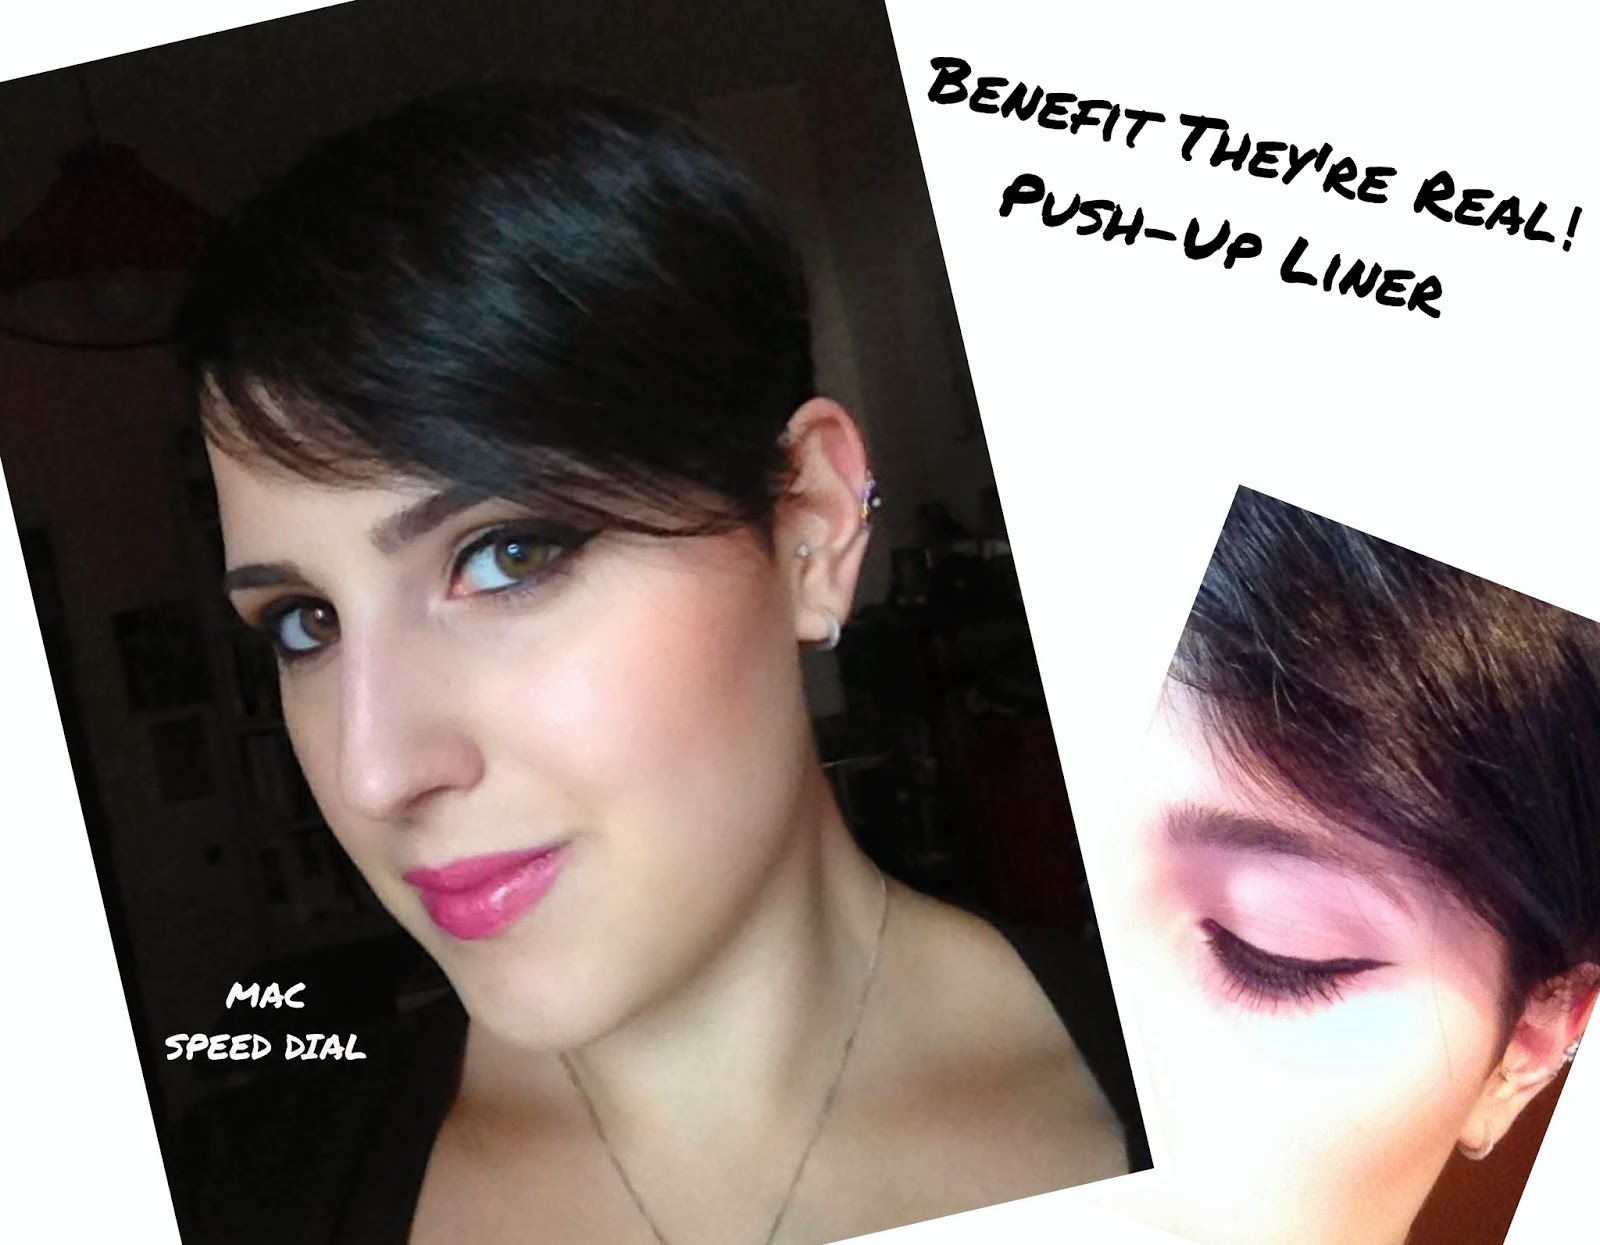 Benefit They're Real Push-Up Liner, Mac Speed Dial